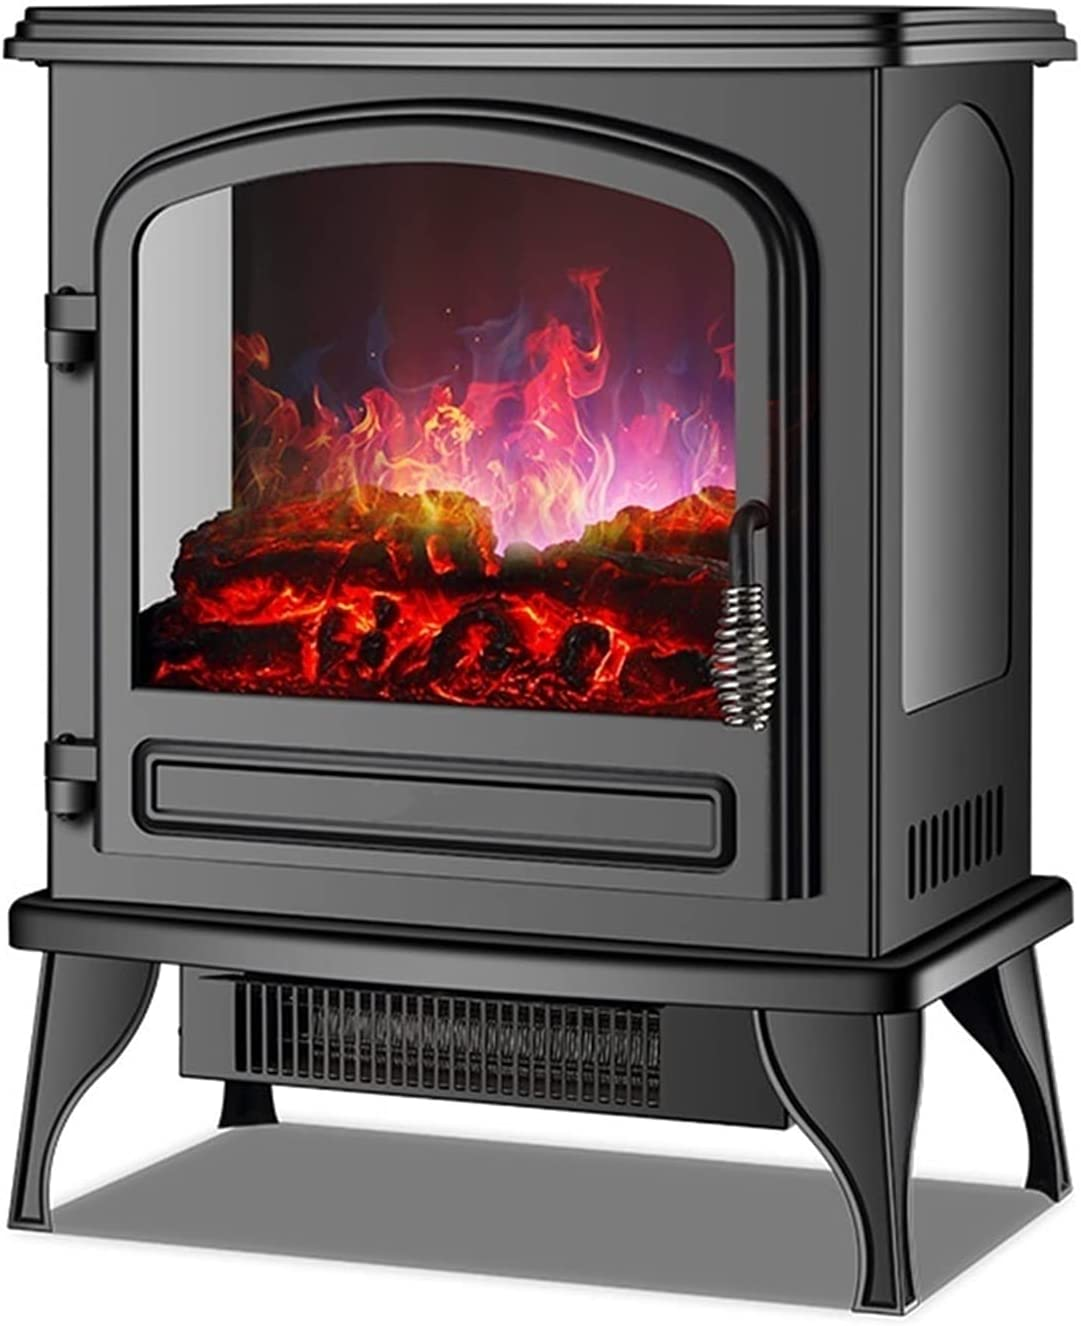 Fireplaces RENJUN- Vertical Electric Kit Special Campaign Realistic 3D Flame Effe Cheap mail order specialty store